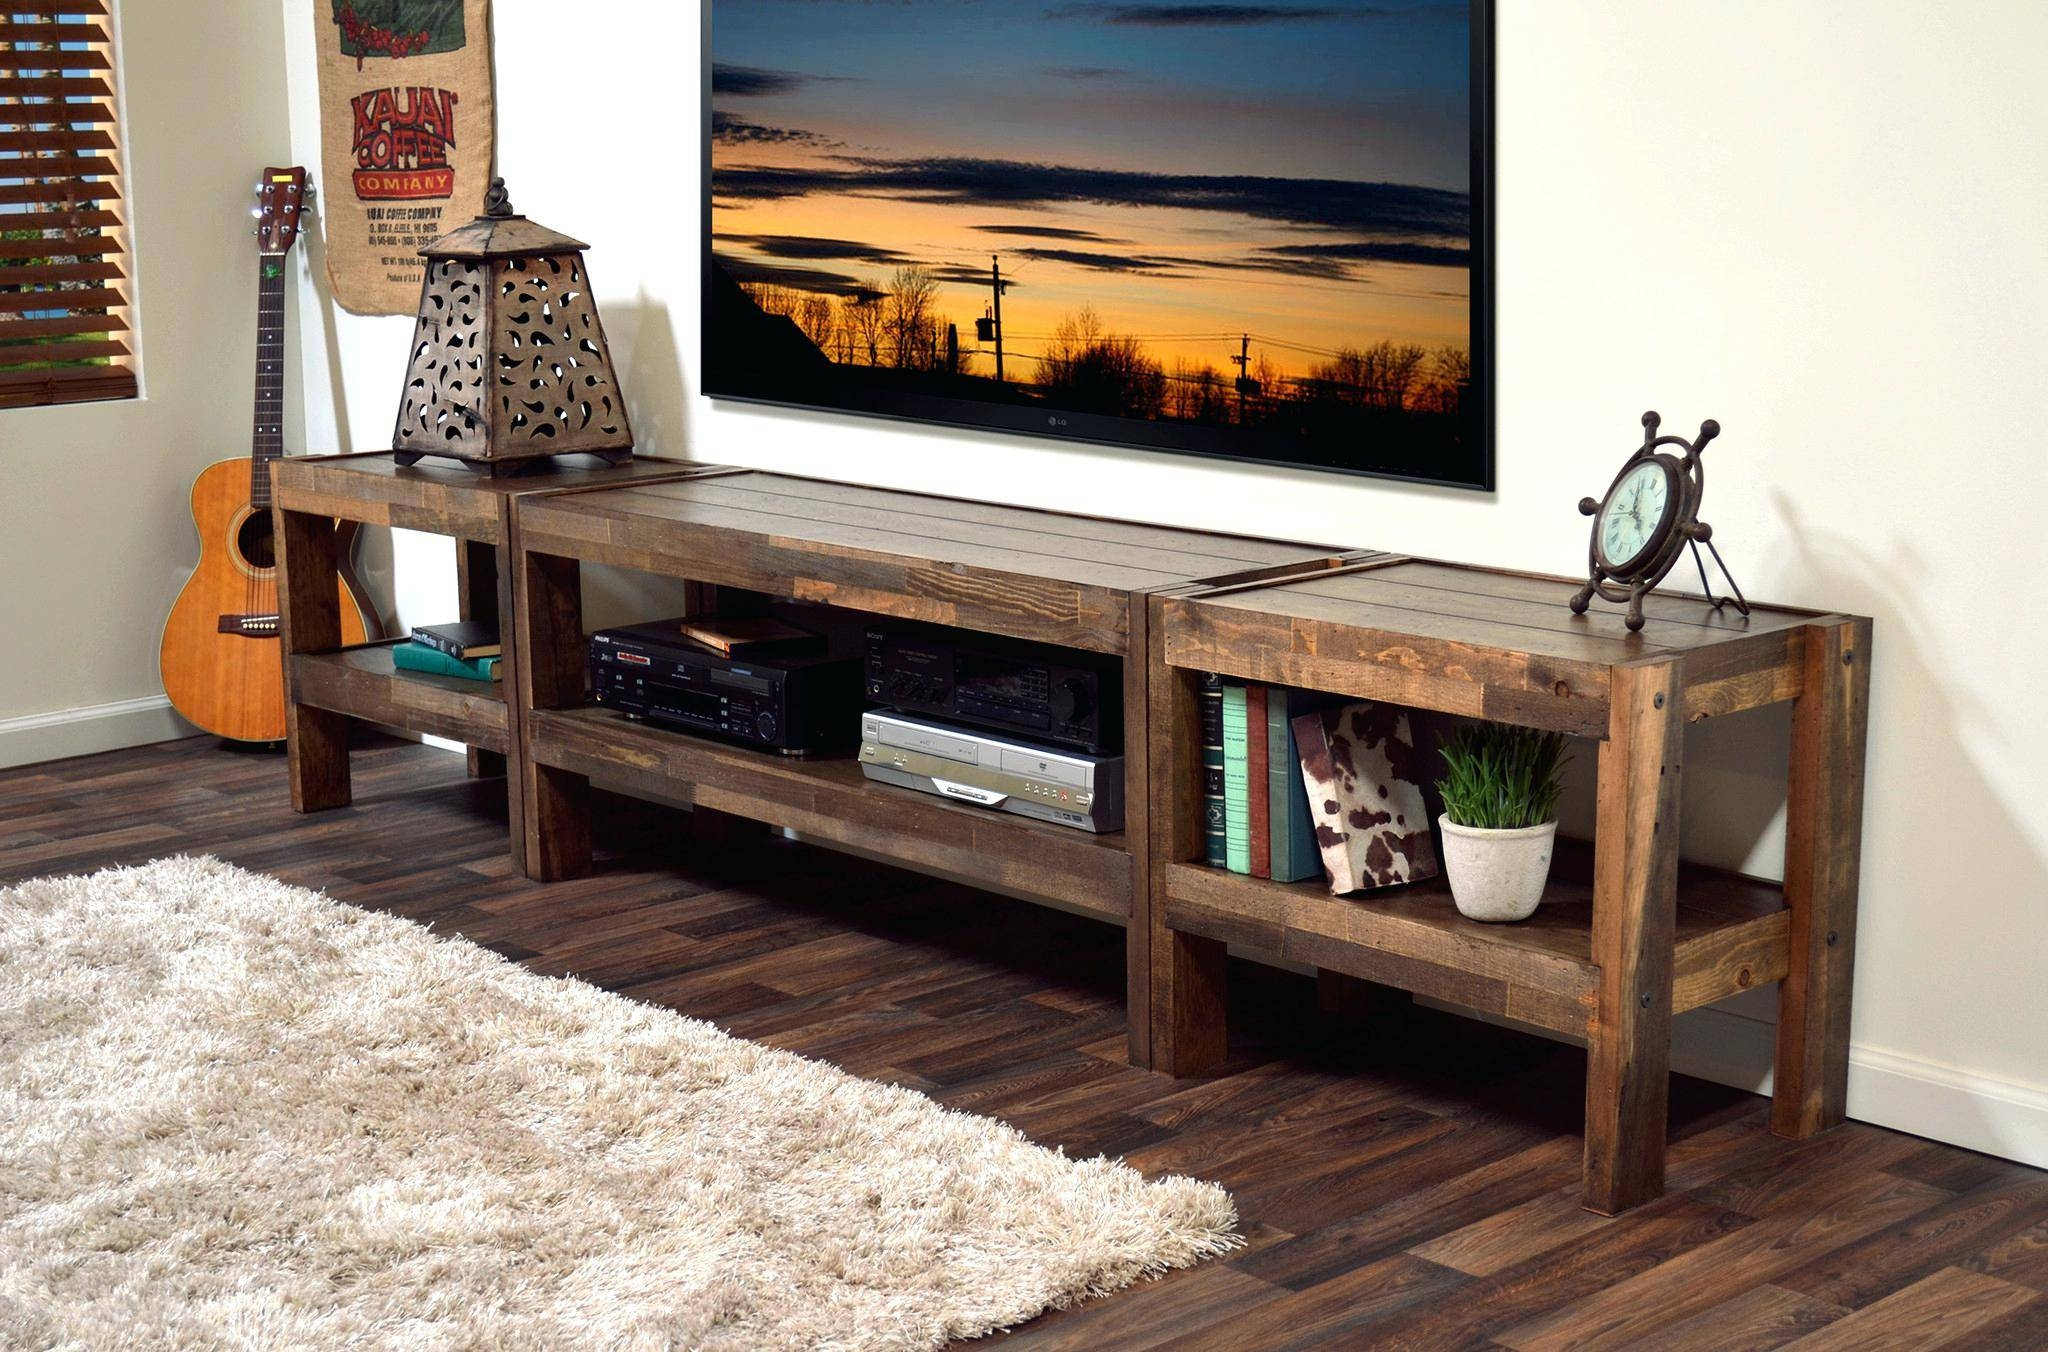 Matching Oak Coffee Table And Tv Stand | Coffee Tables Decoration with regard to Matching Tv Unit and Coffee Tables (Image 19 of 30)